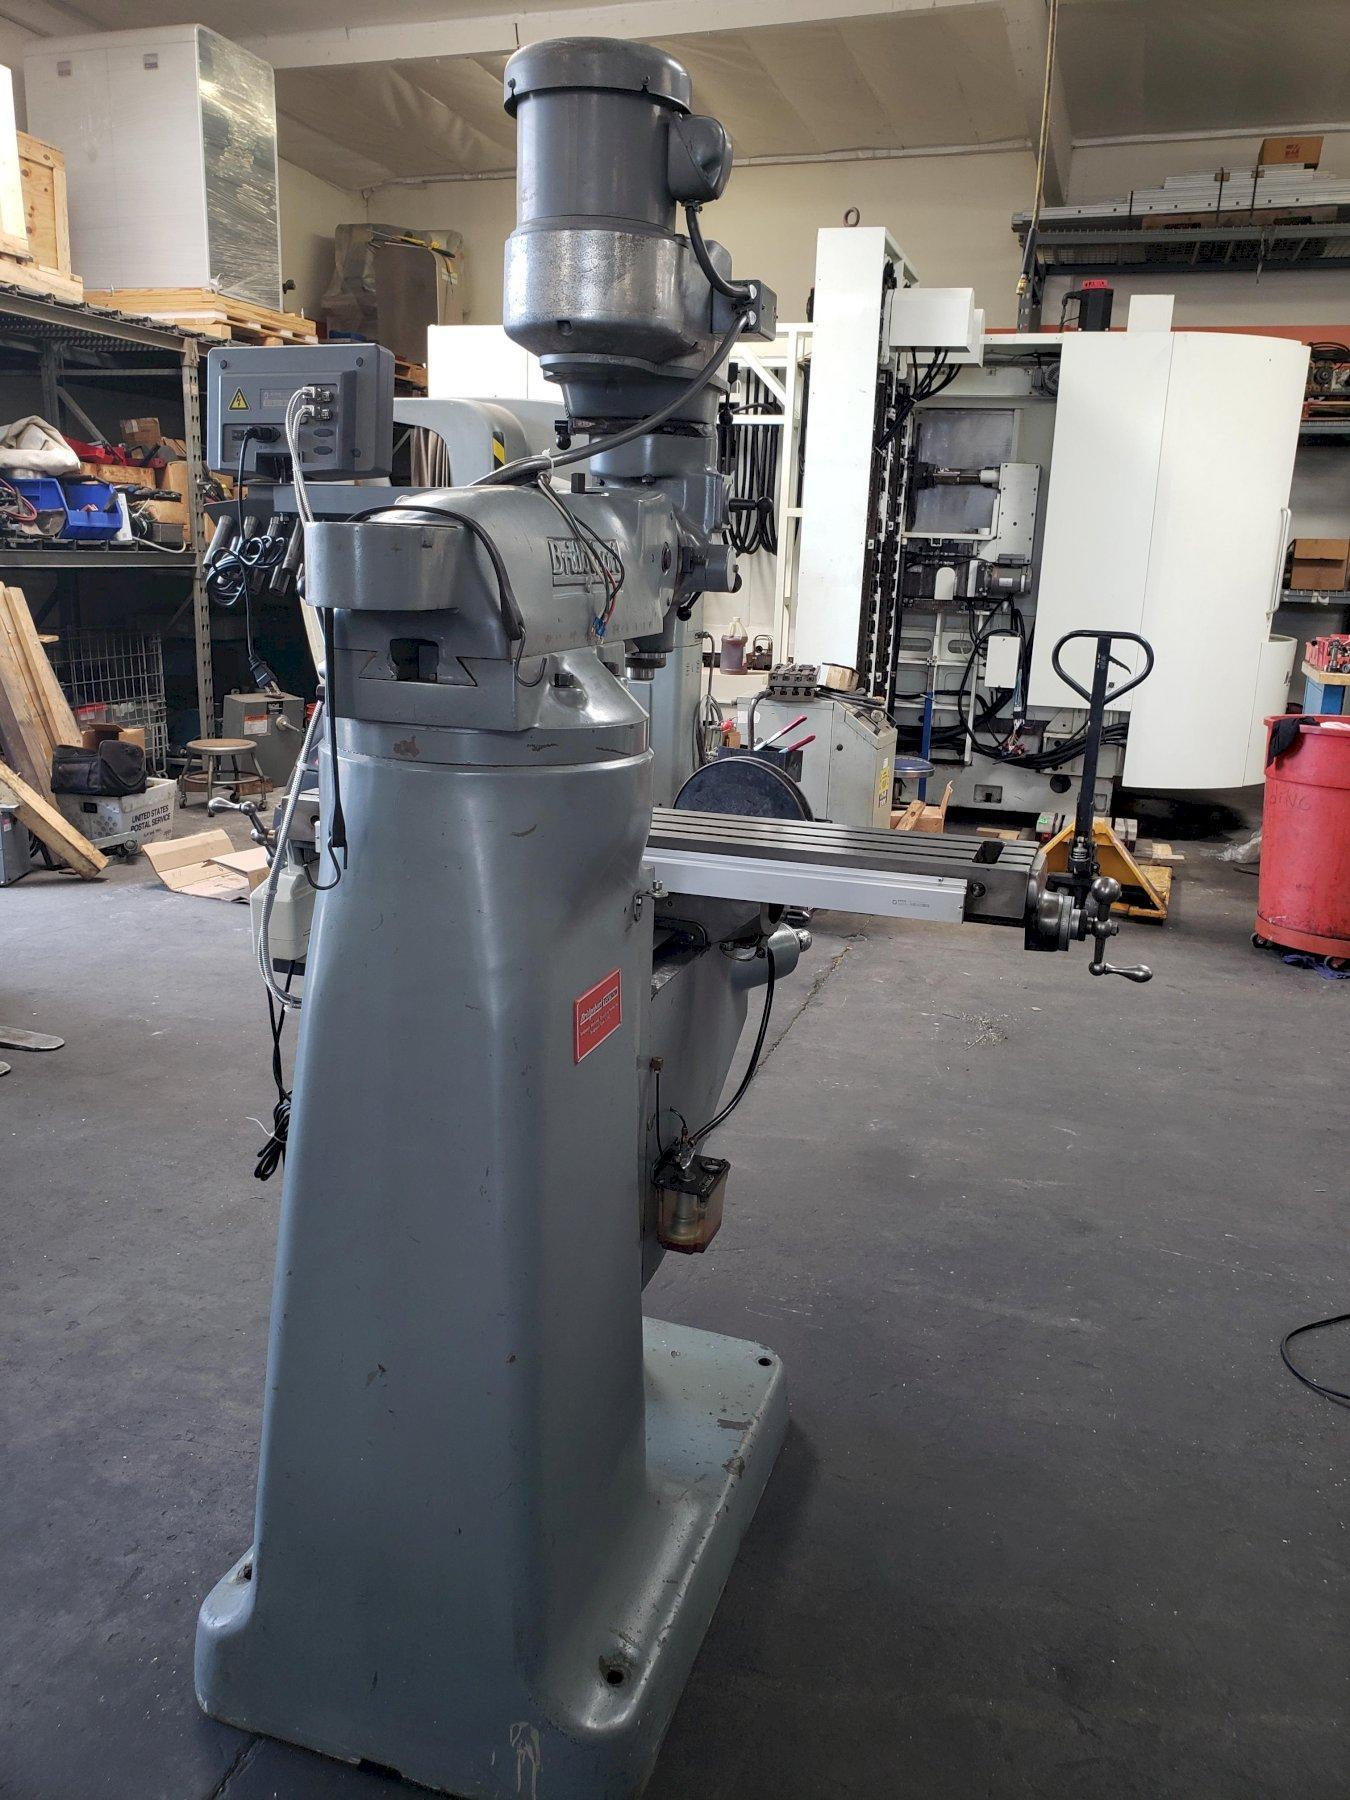 Bridgeport Series 1 Vertical Mill with Sino SDS6-2V DRO, Align Power Feed Table, and One Shot Lube.